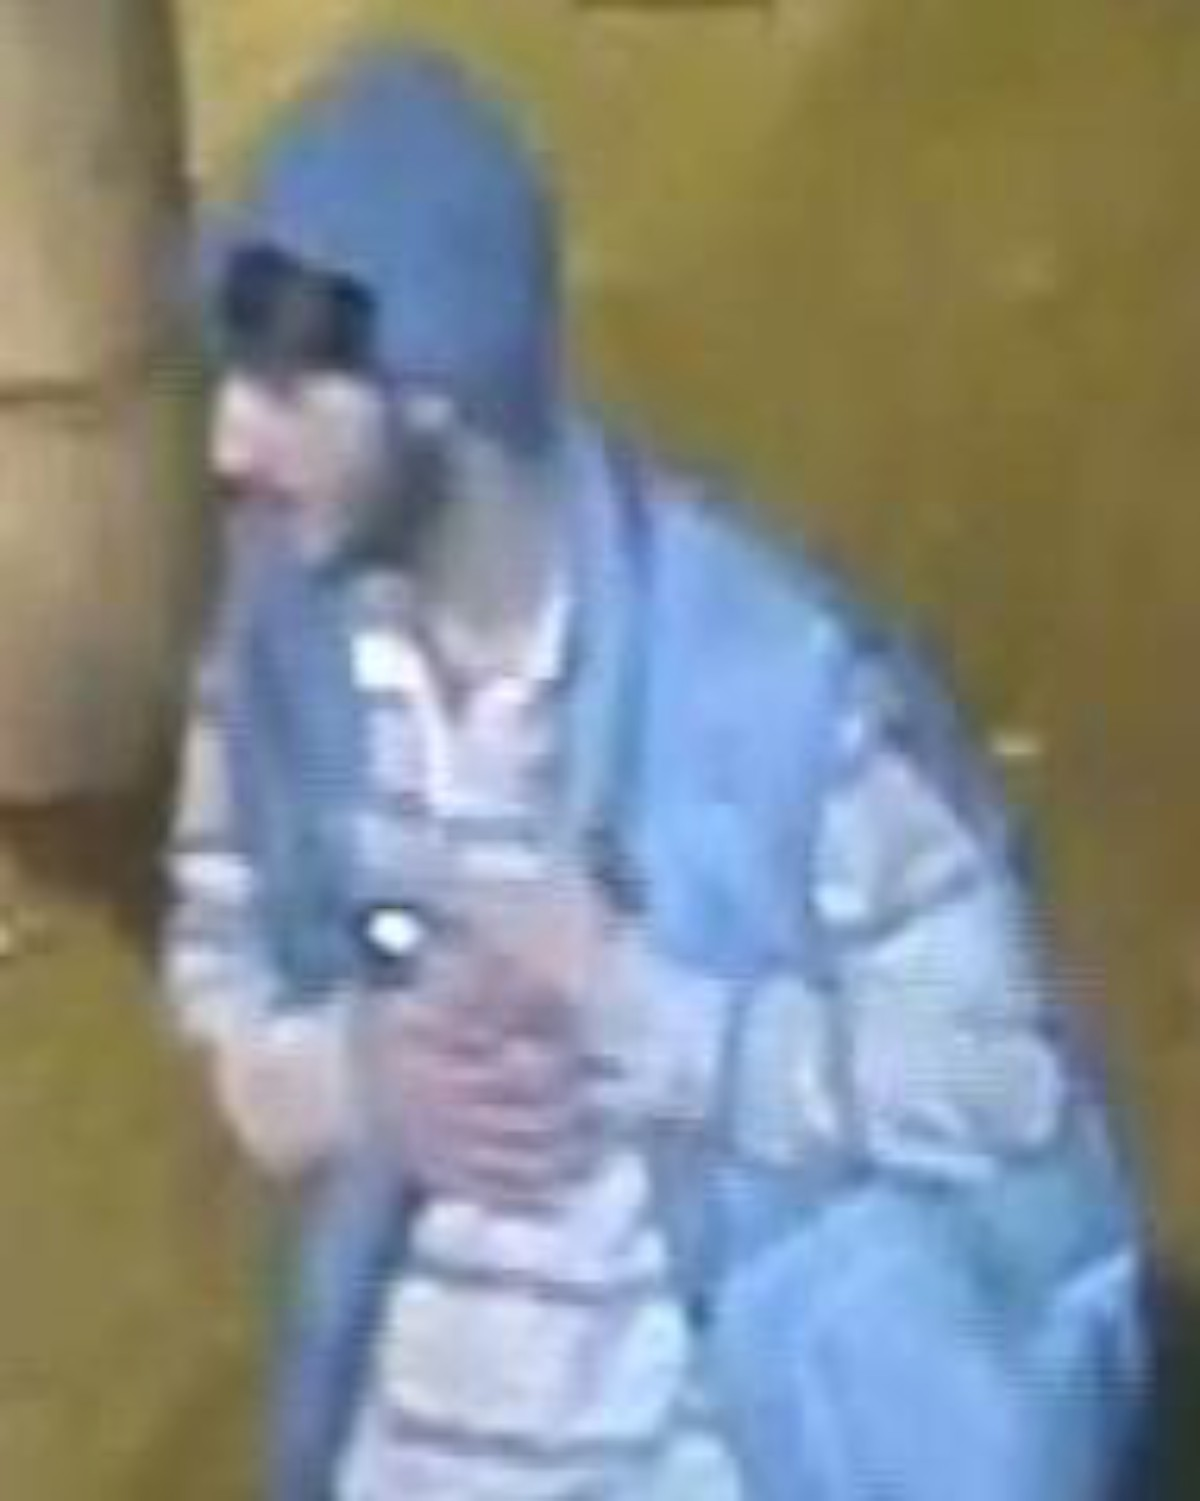 Surrey Comet: Police would like to speak to this man about the attack on October 5